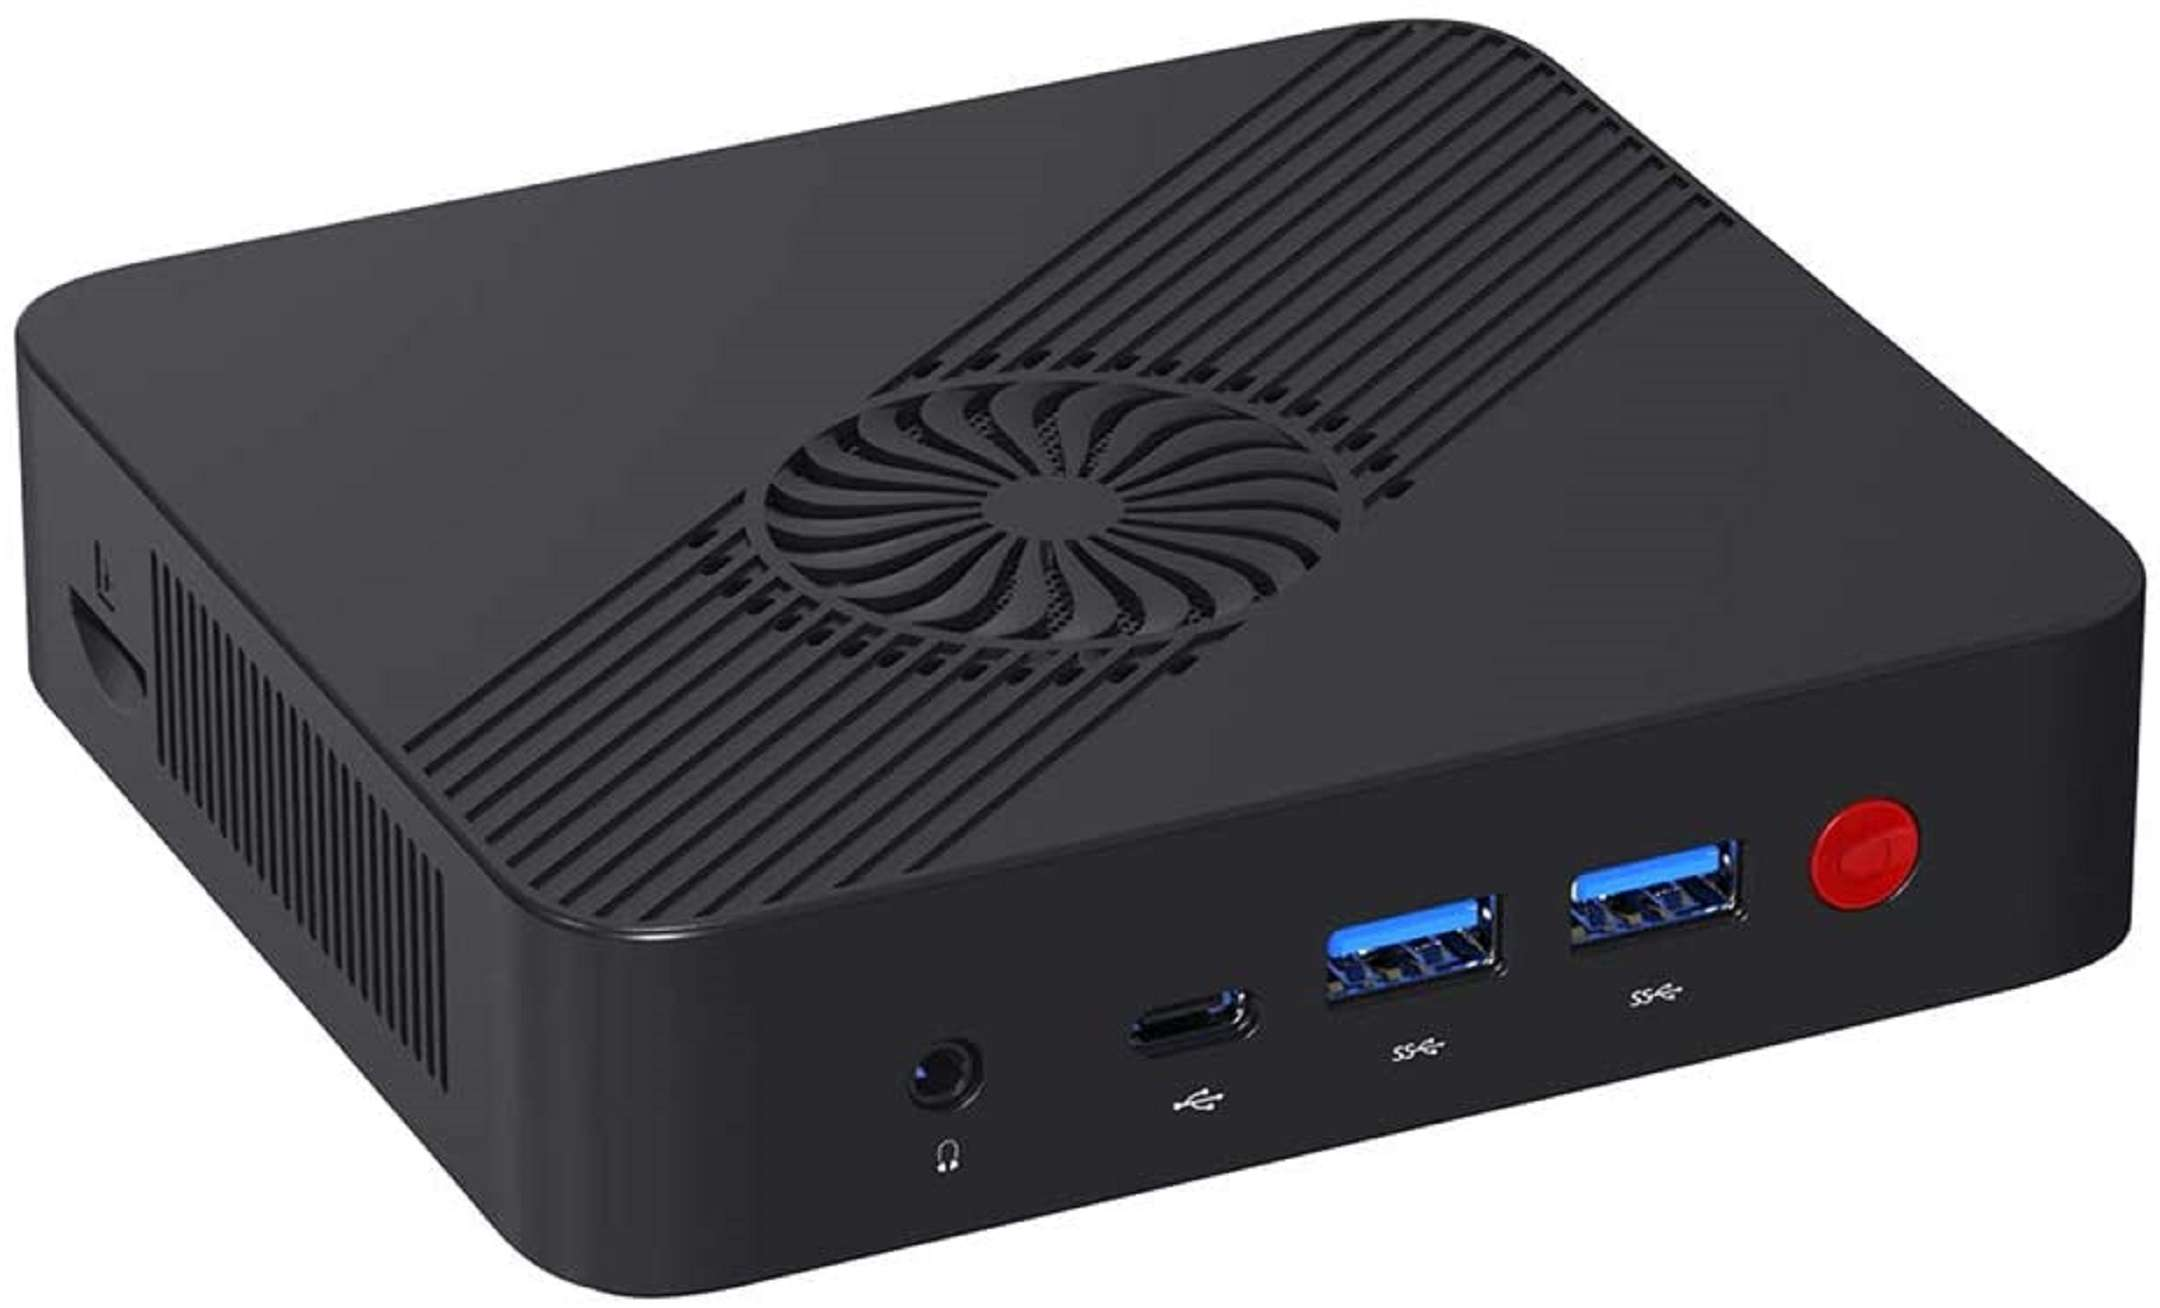 Mini PC with 8 GB of RAM and Windows 10 on a flash offer